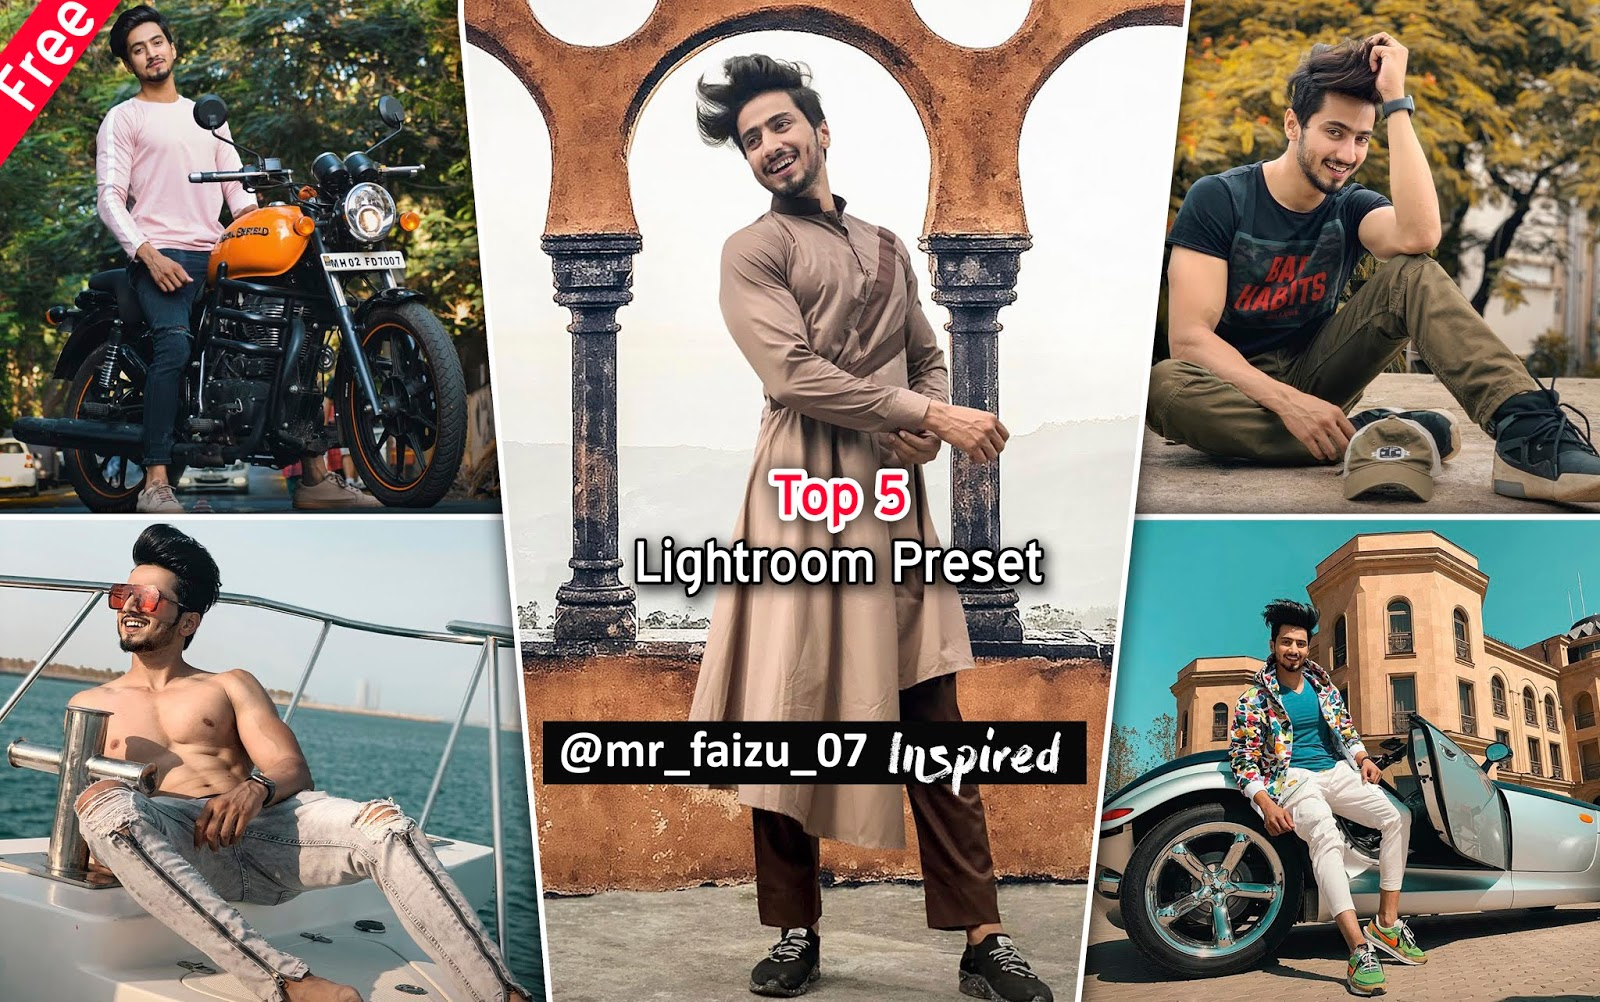 Download Top 5 @Mr_Faizu_07 Lightroom Preset for Free | How to Edit Photos Like Mr.Faizal Shaikh in Lightroom